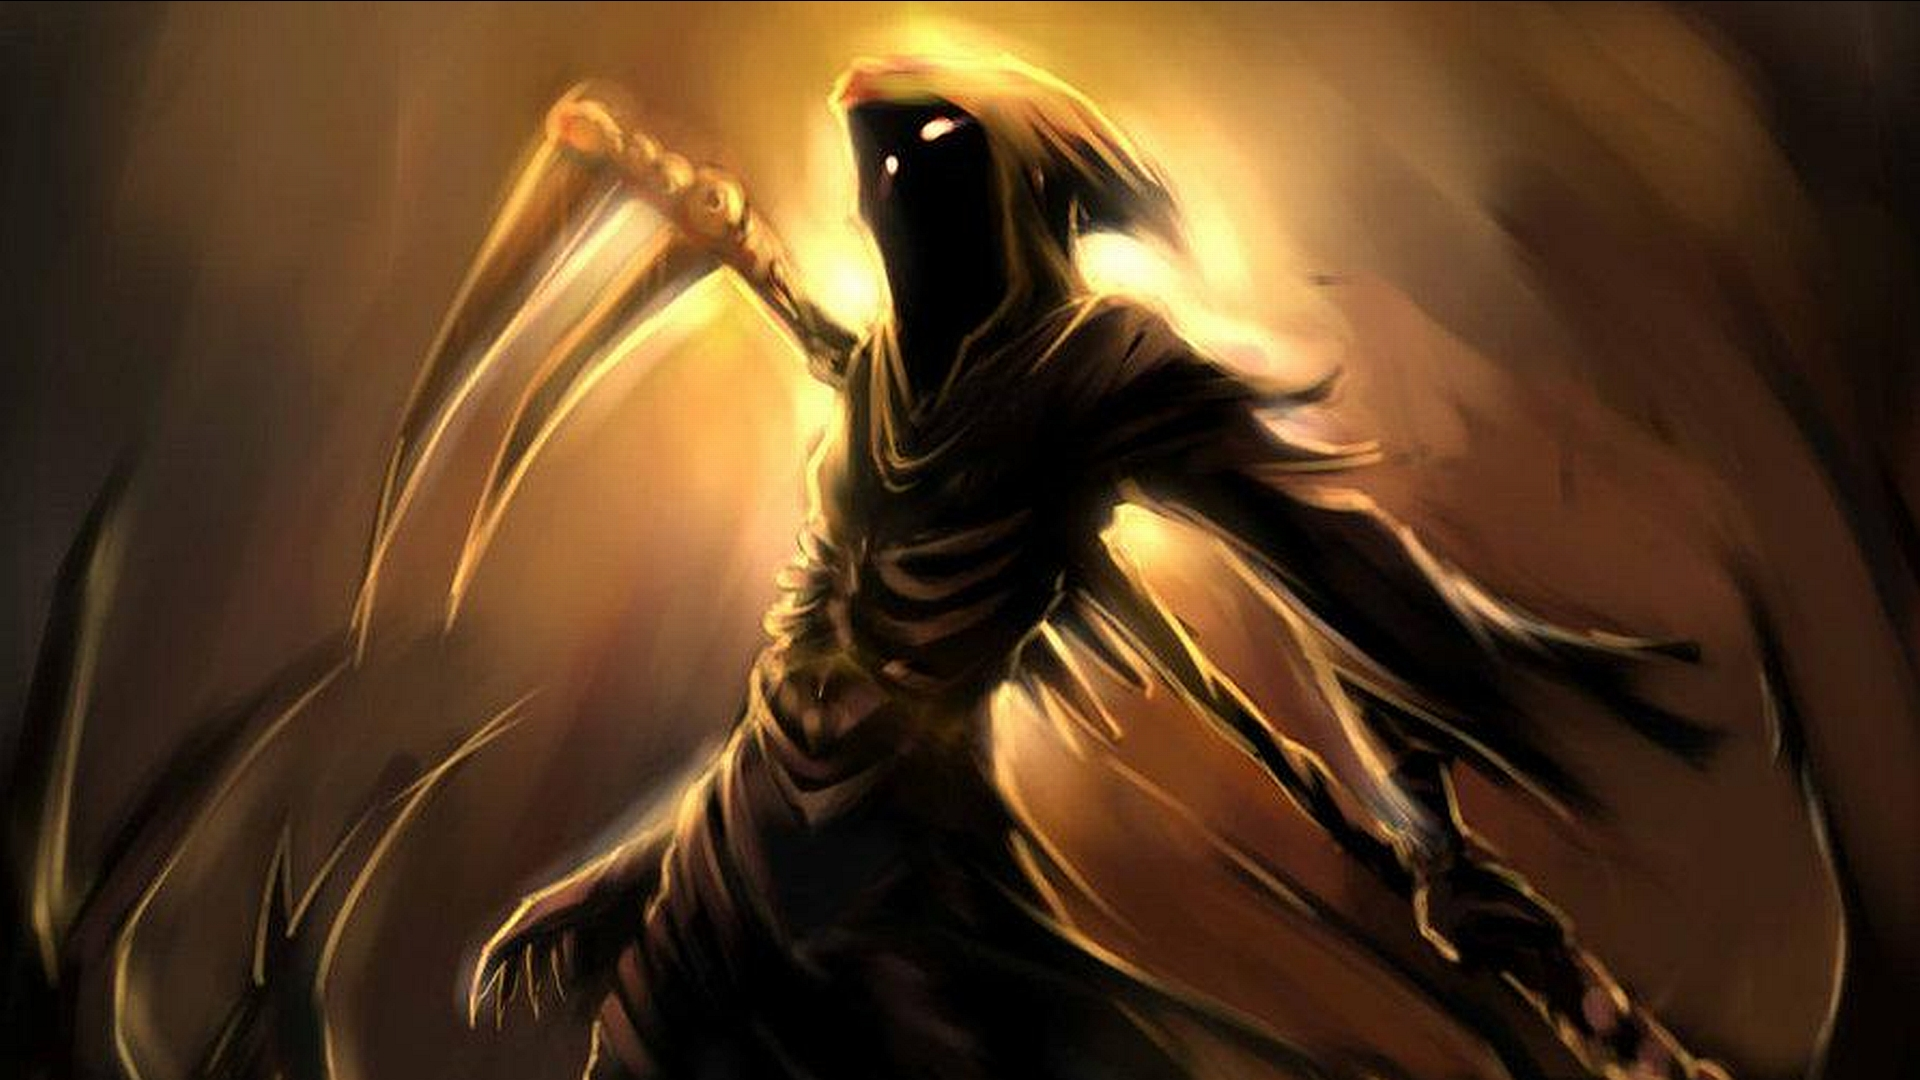 Hd Reaper Wallpaper Images amp Pictures   Becuo 1920x1080